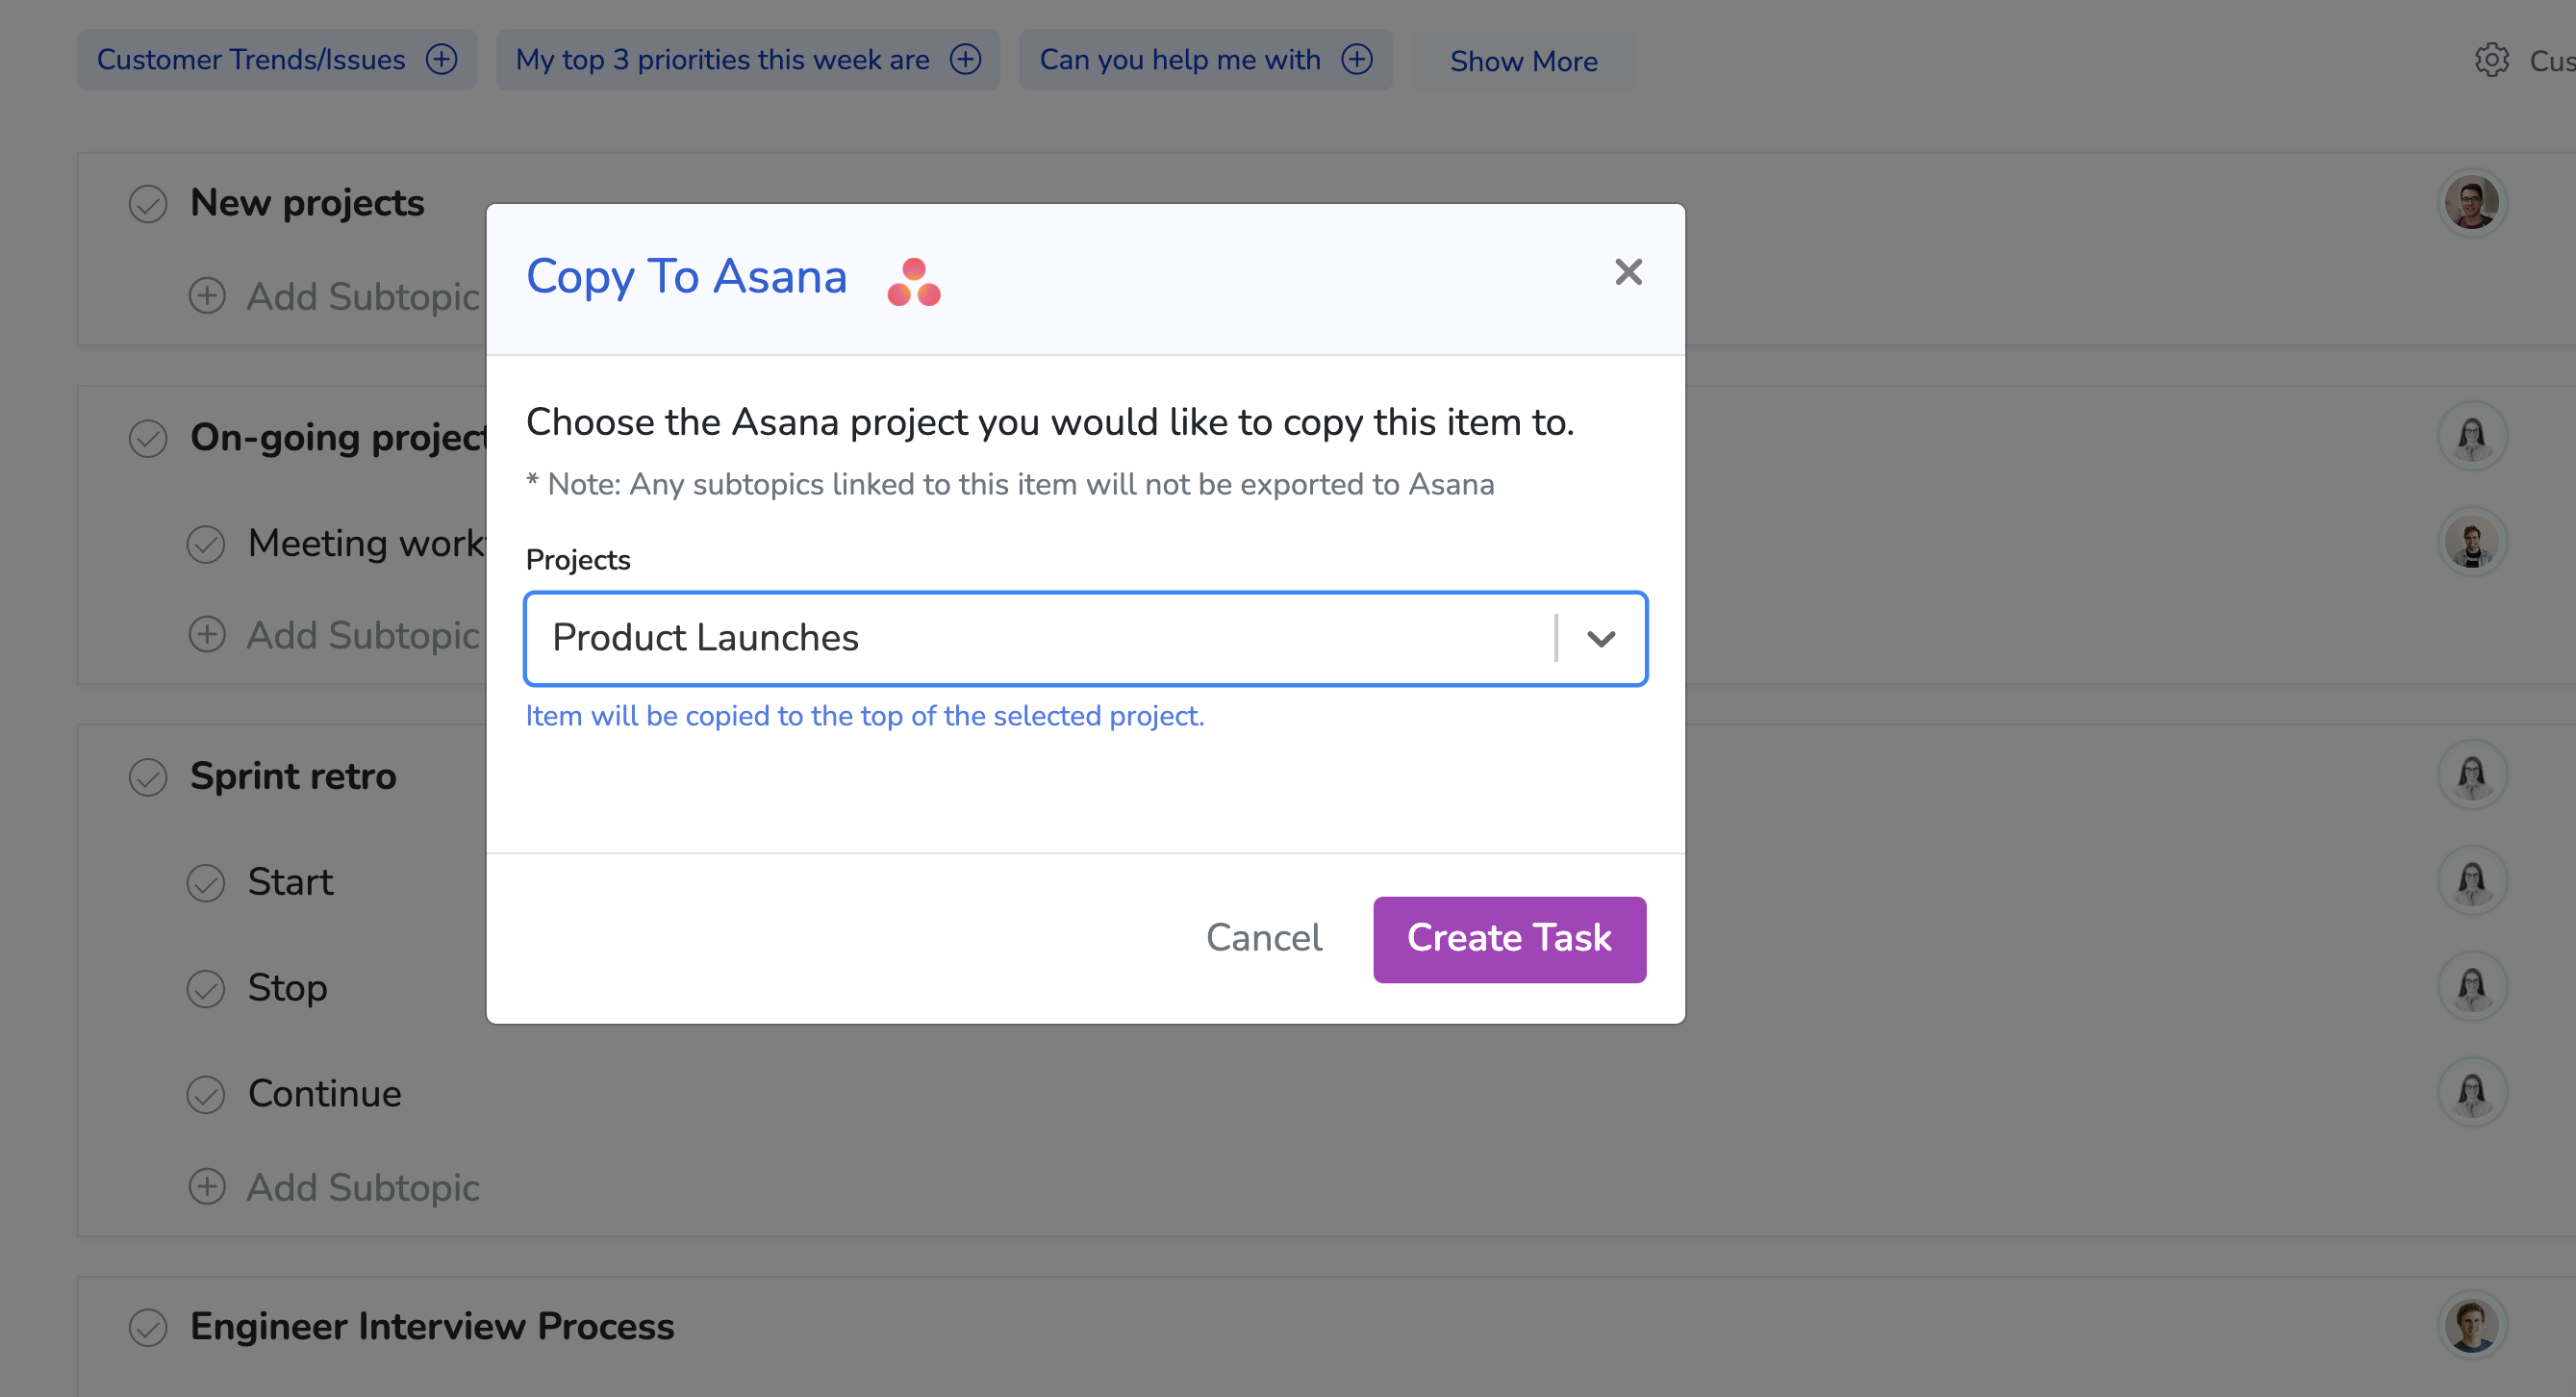 image showing the Copy To Asana modal with project selected from dropdown, and create task button highlighted